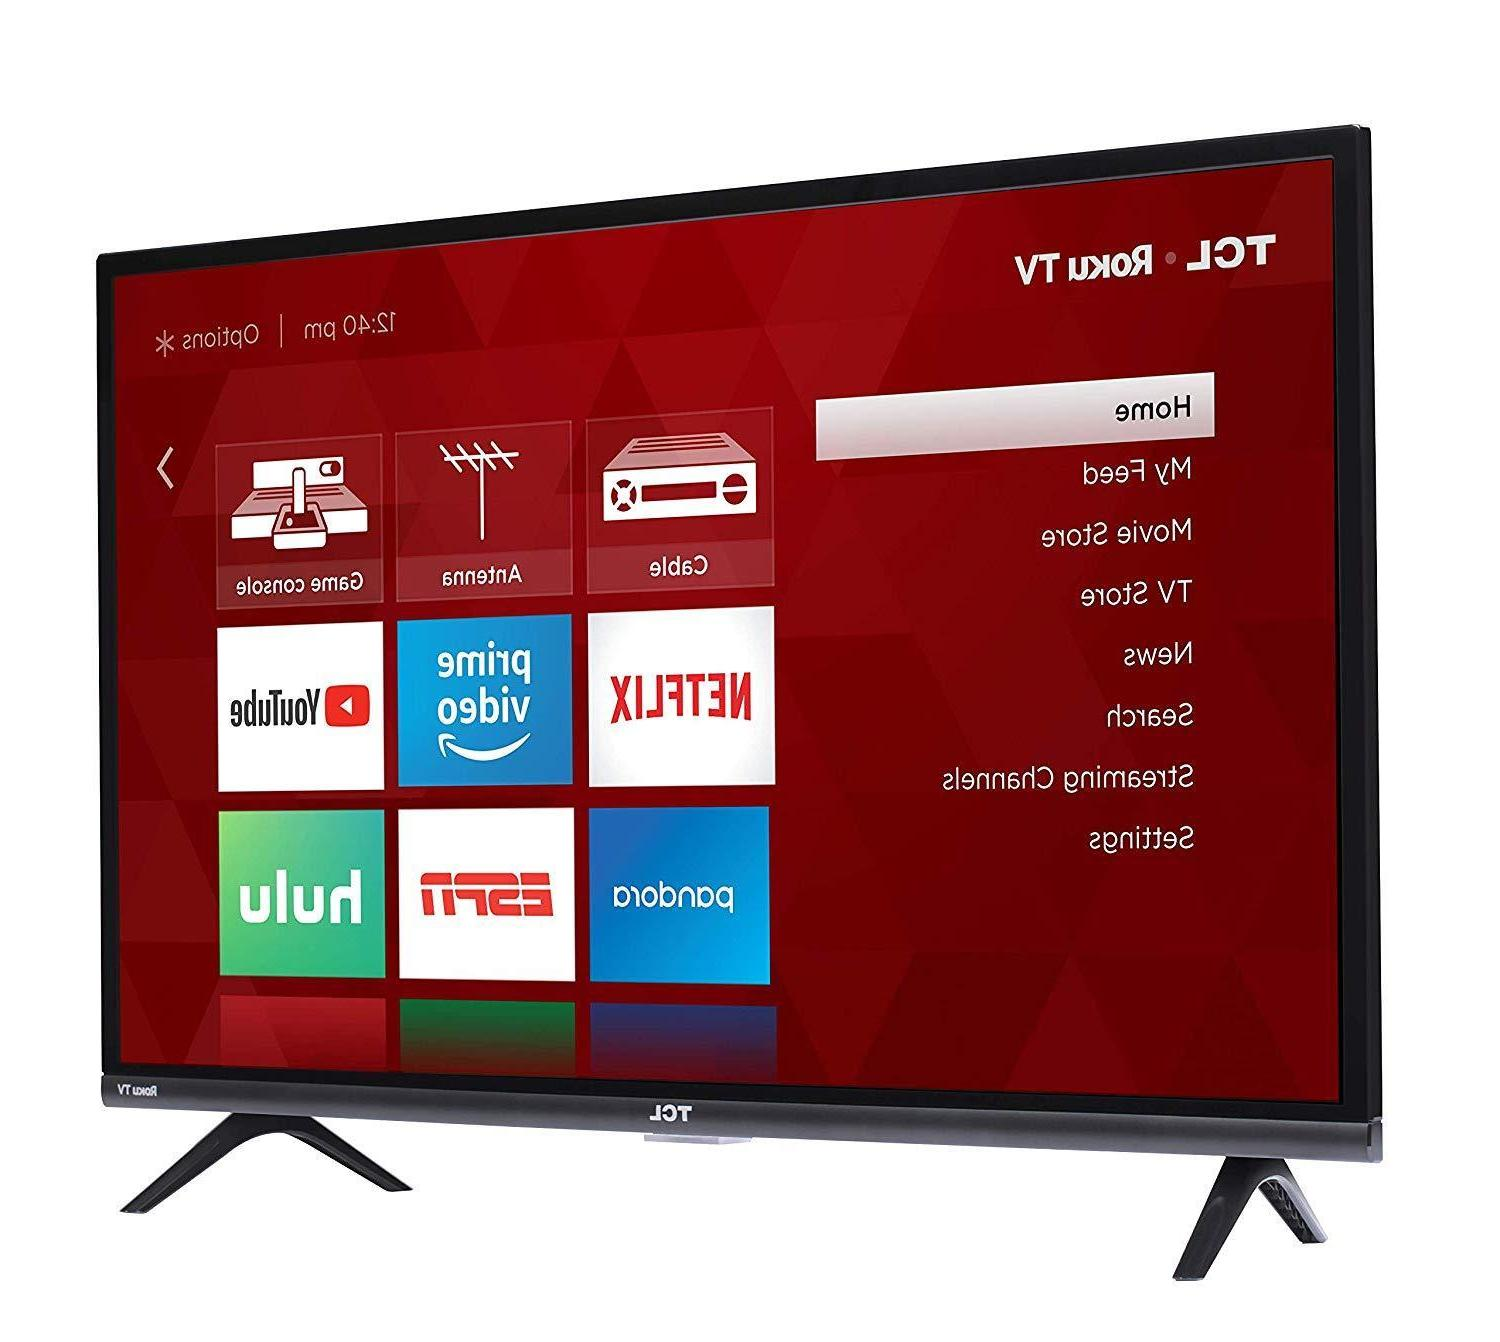 roku smart led tv 32 inch 1080p